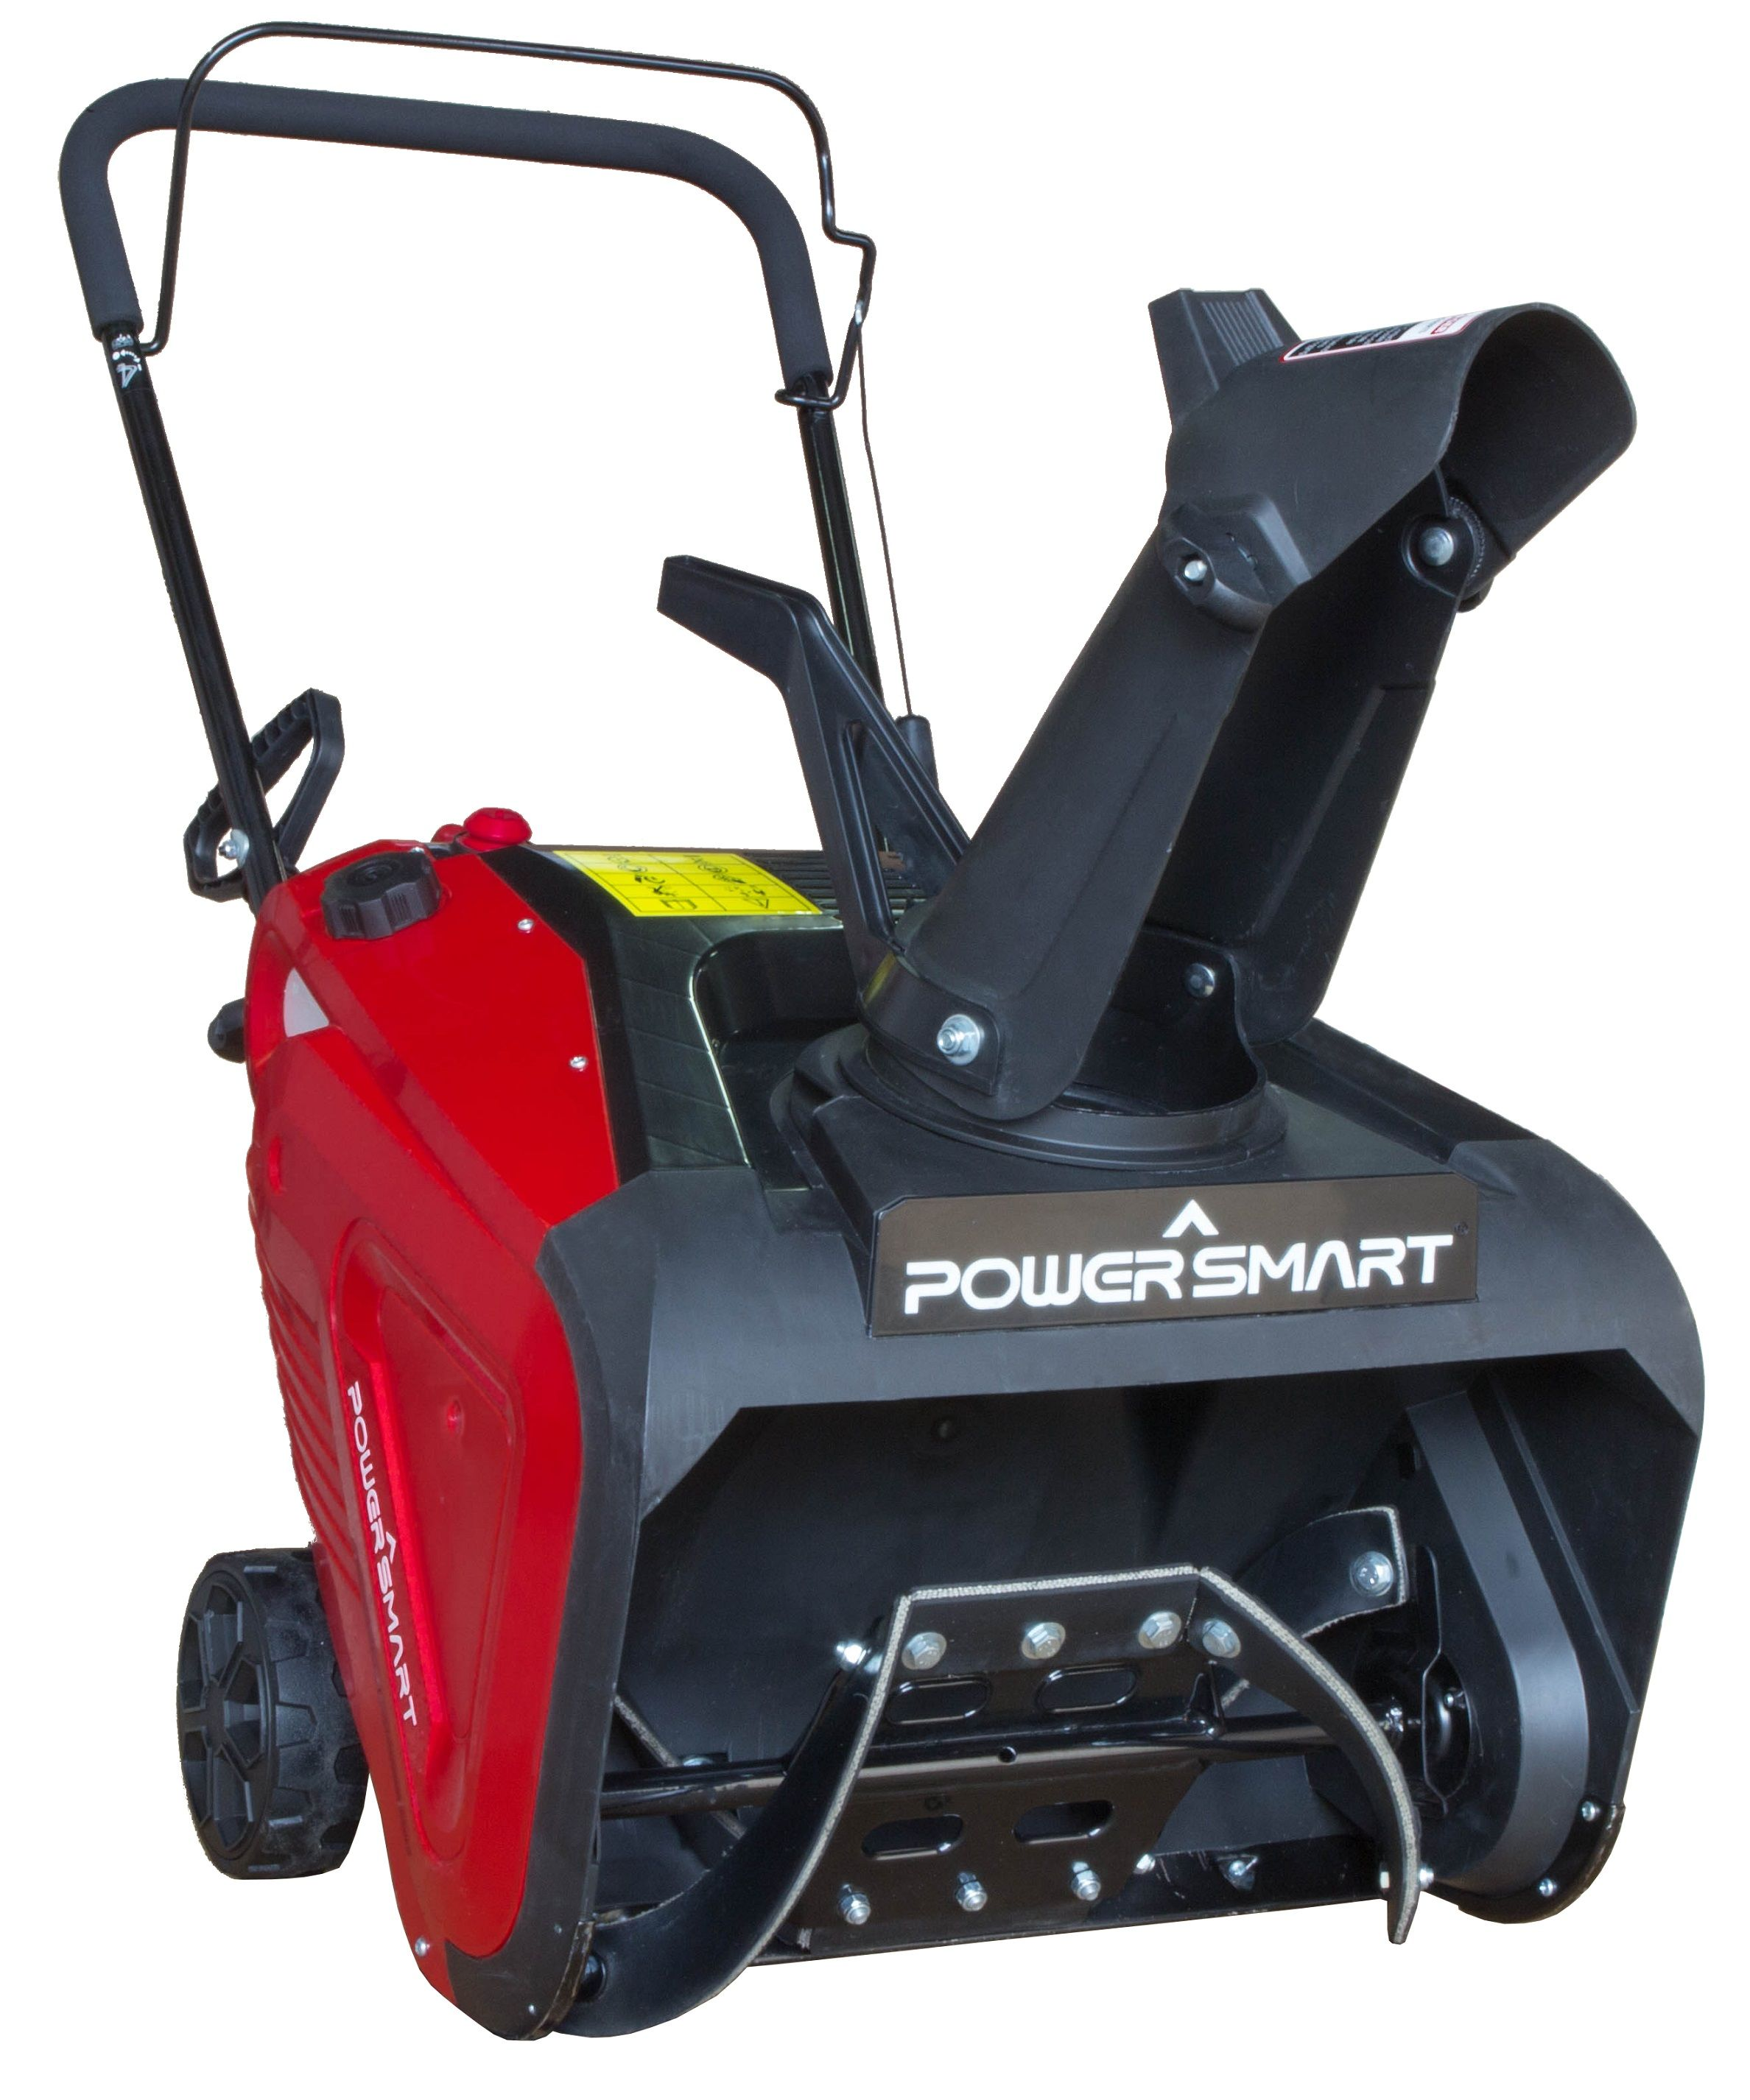 small resolution of power smart db7005 21 196cc manual start single stage snow blower